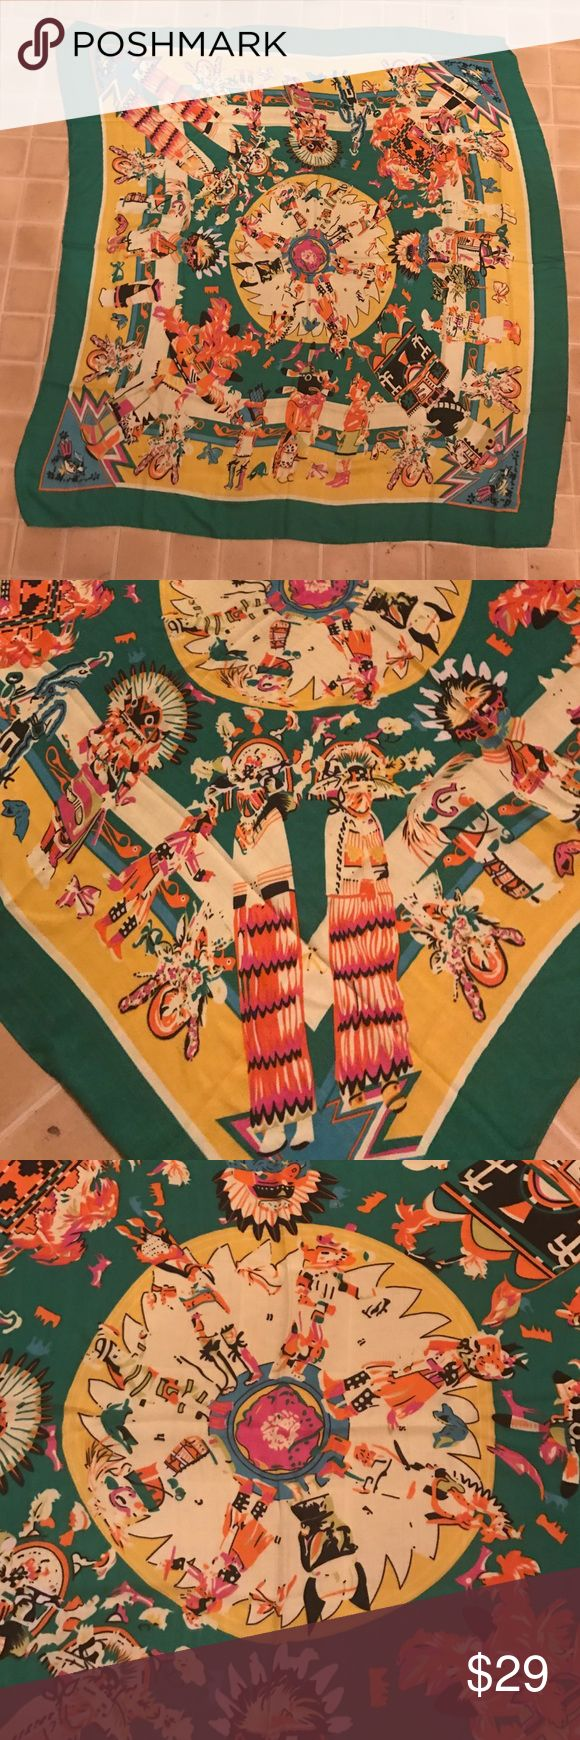 "Tribal, boho, Aztec Scarf Tribal, boho, Aztec scarve . Absolutely stunning brown scarf with so much detail, may have a few pulls but you can't tell. It paints a whole picture. Scarf measures roughly 50""x 50"". 100% viscose. Accessories Scarves & Wraps"